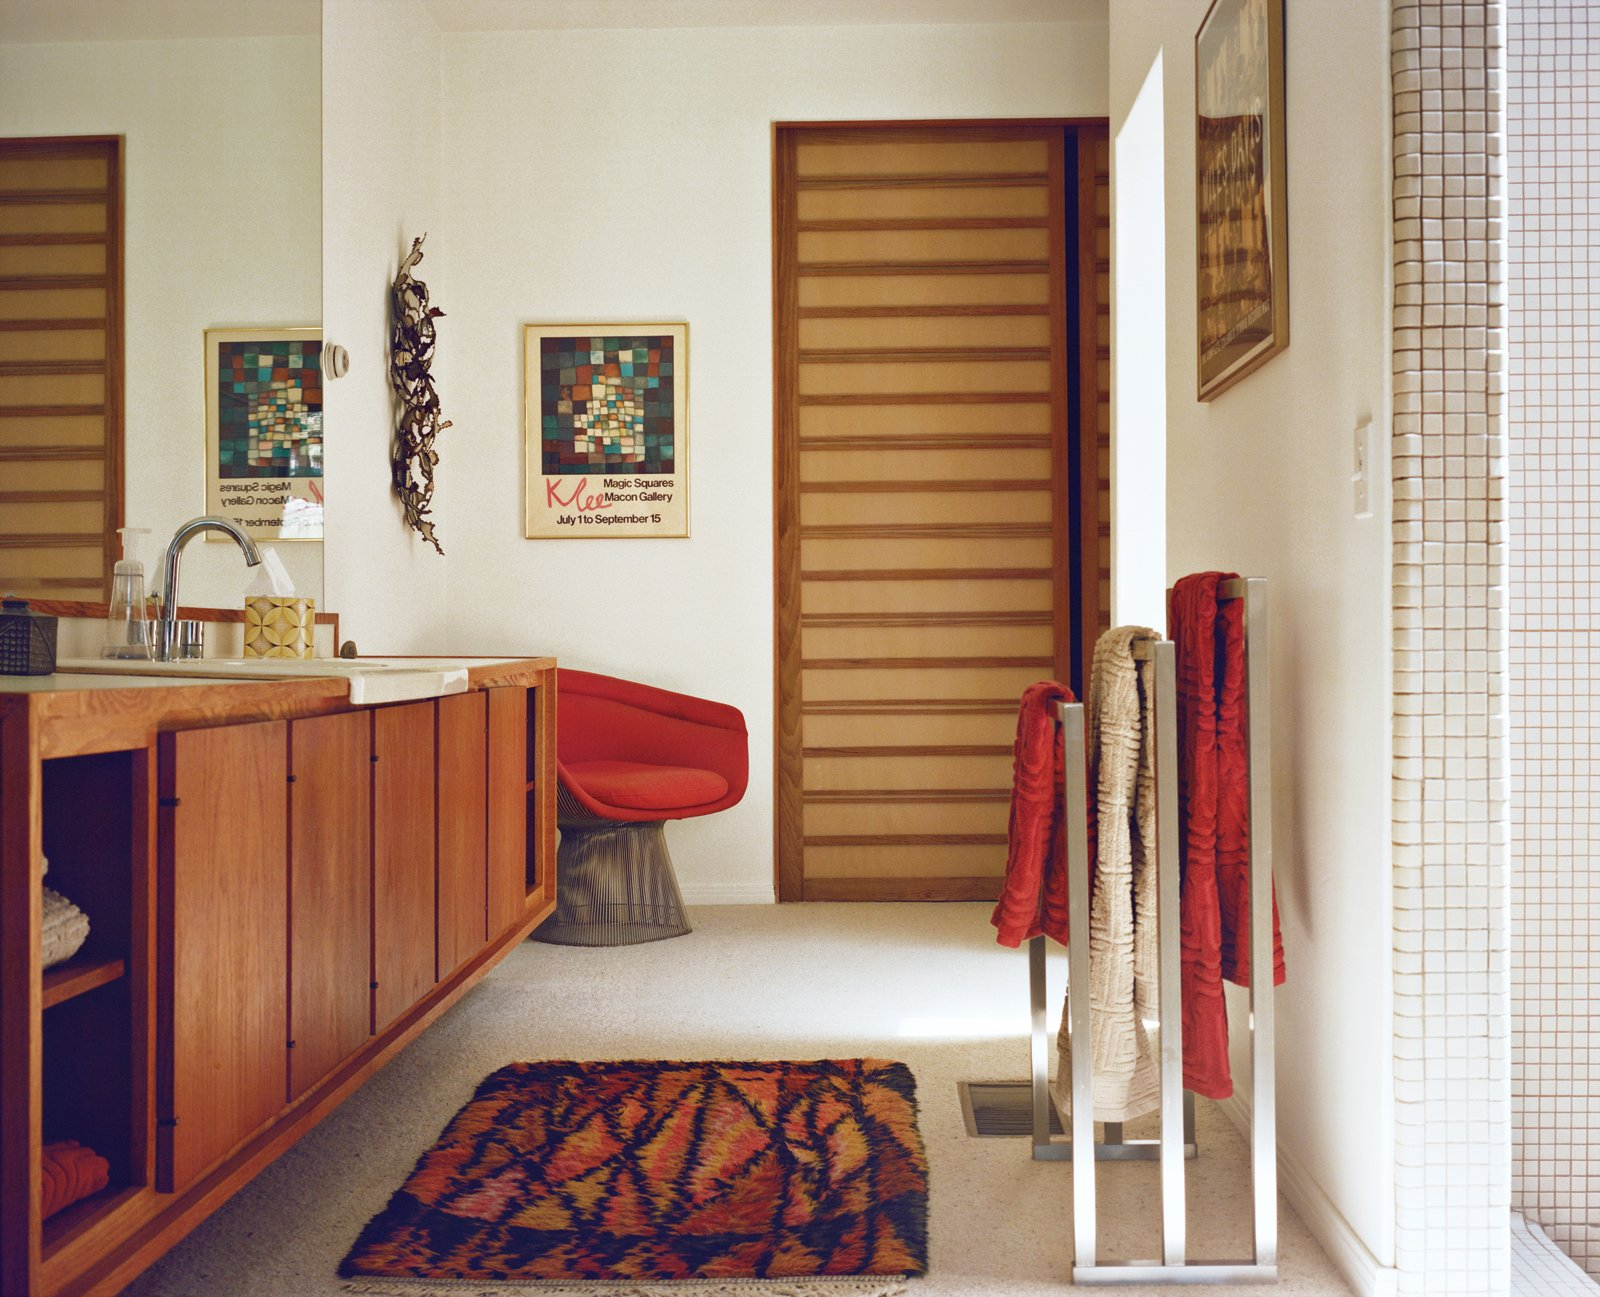 Warren Platner, though, gets the credit for the Wire series lounge chair for Knoll in the bathroom.